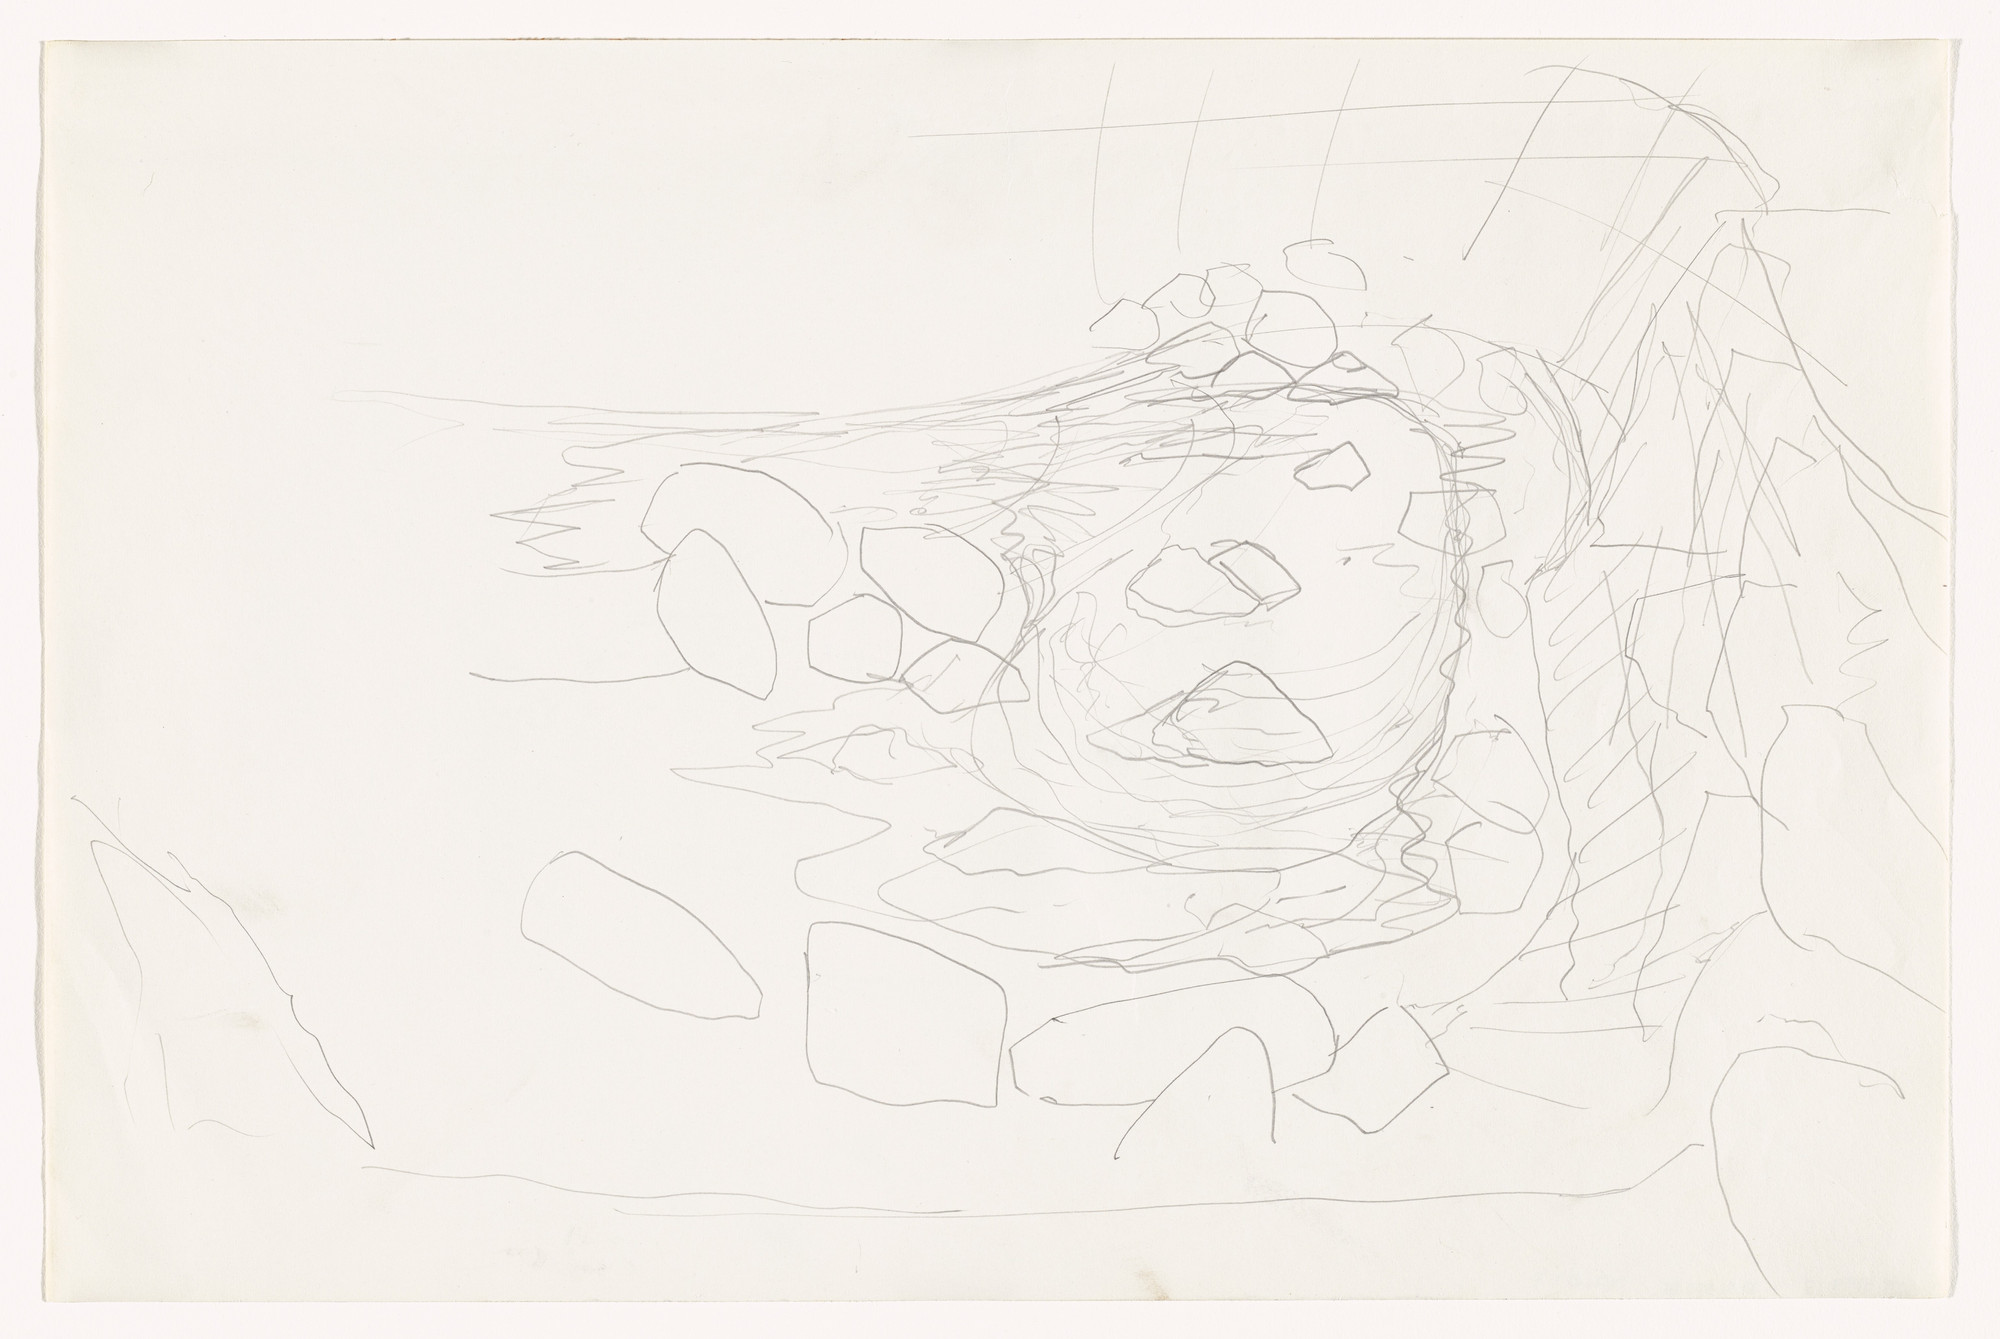 Robert Smithson. Sketch for Quarry Project: Texas Overflow. (1968)